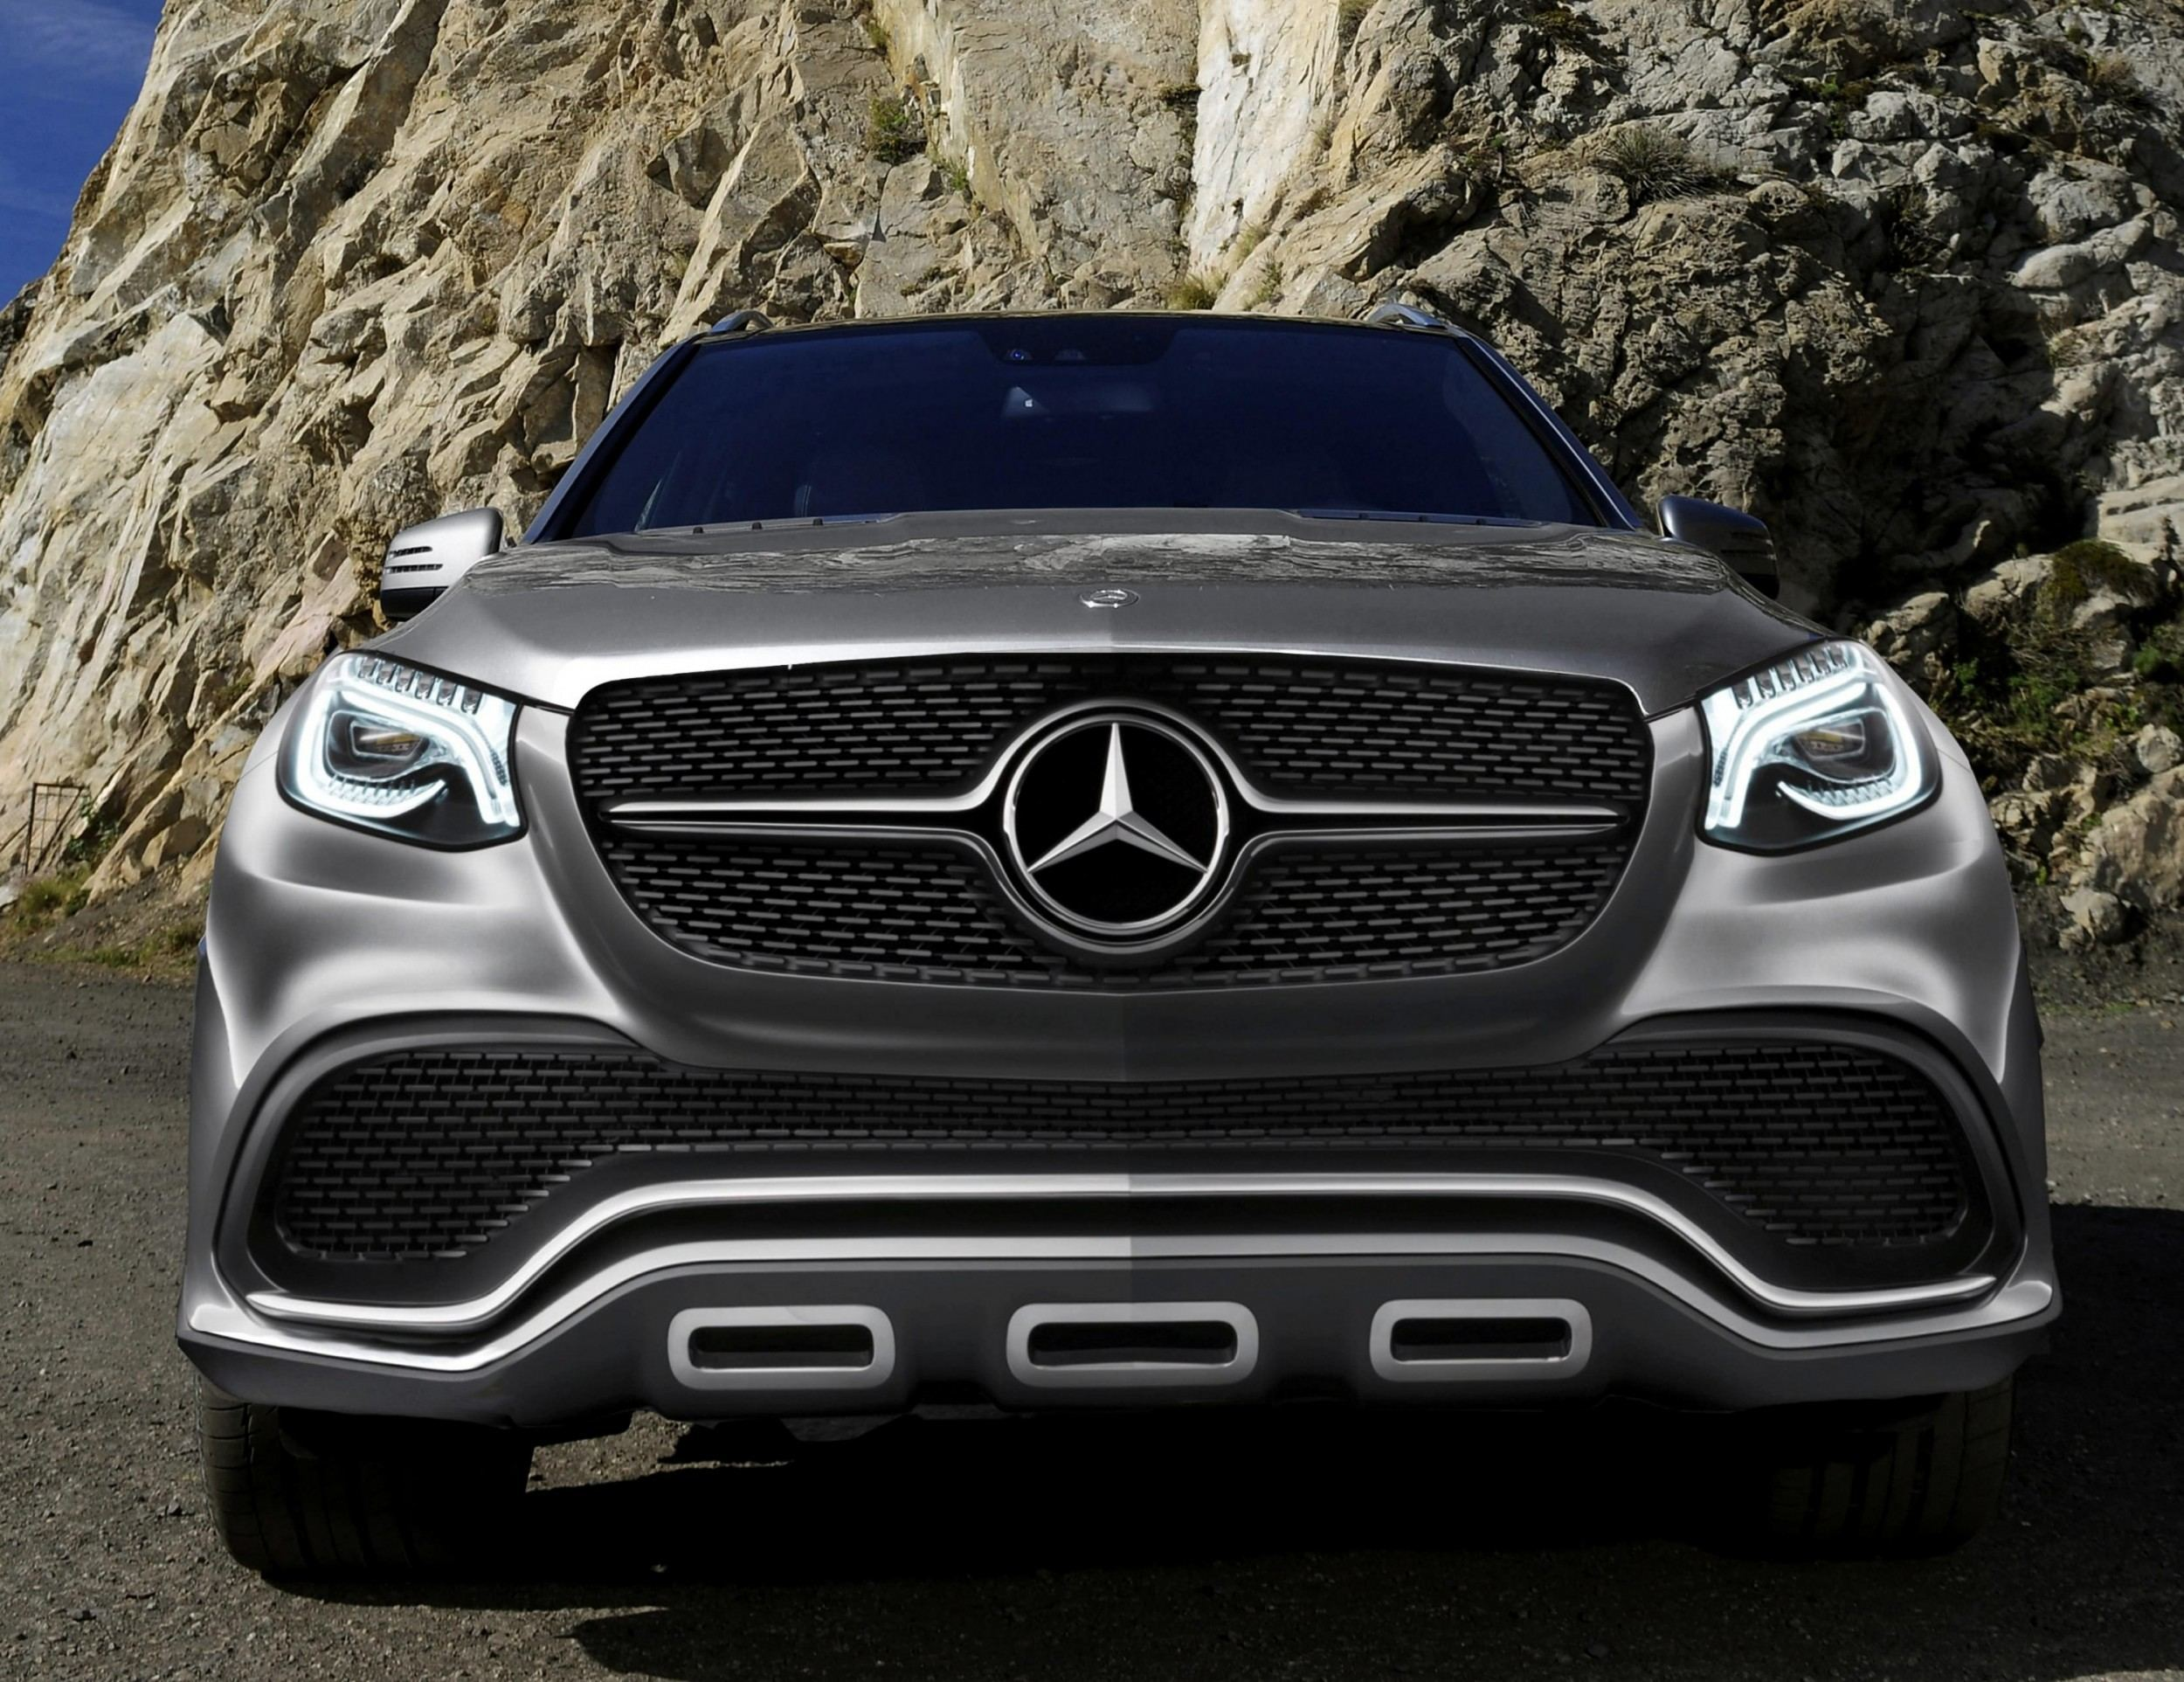 revealed specs prices info mercedes zmercedesxclass class a benz car price official news and concepts pick power truck pickup pictures gains new x posher by first up